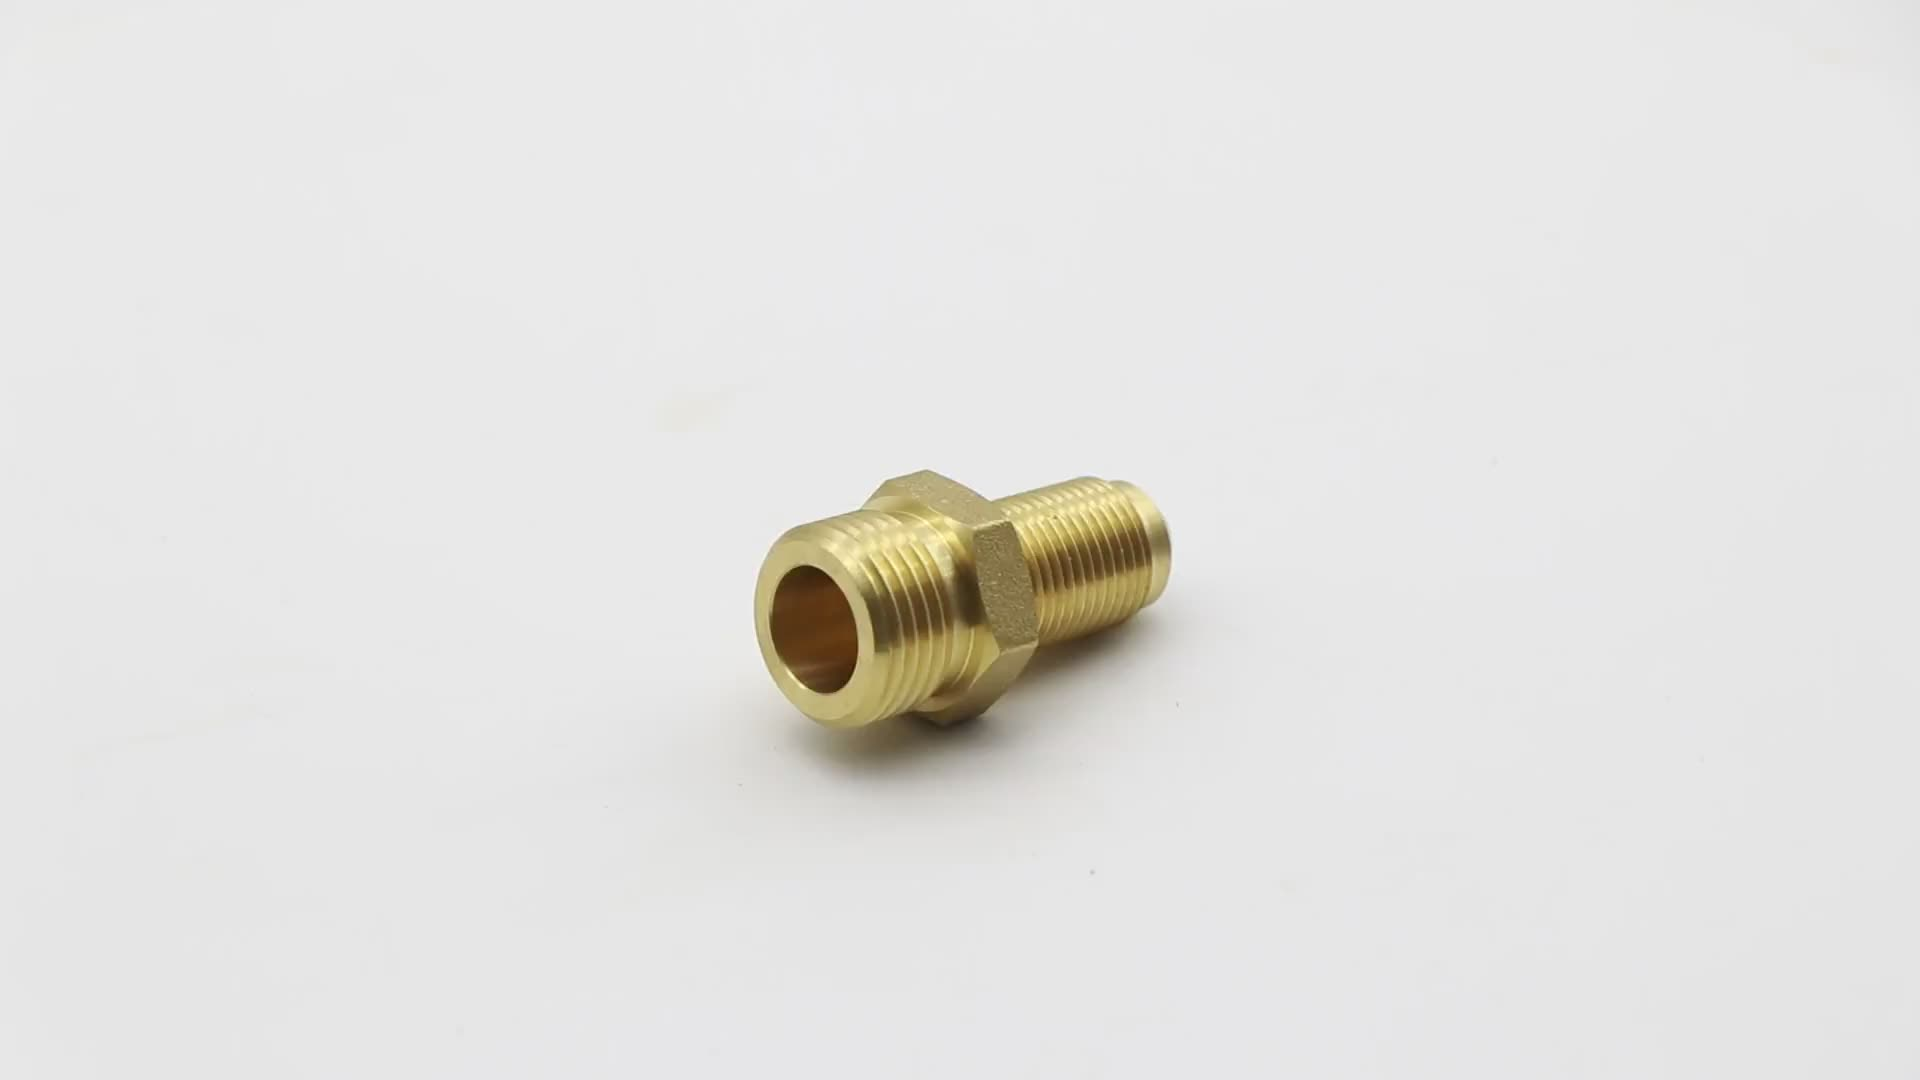 K528  45-degree angle male thread brass flare fitting quick coupling for motor homes